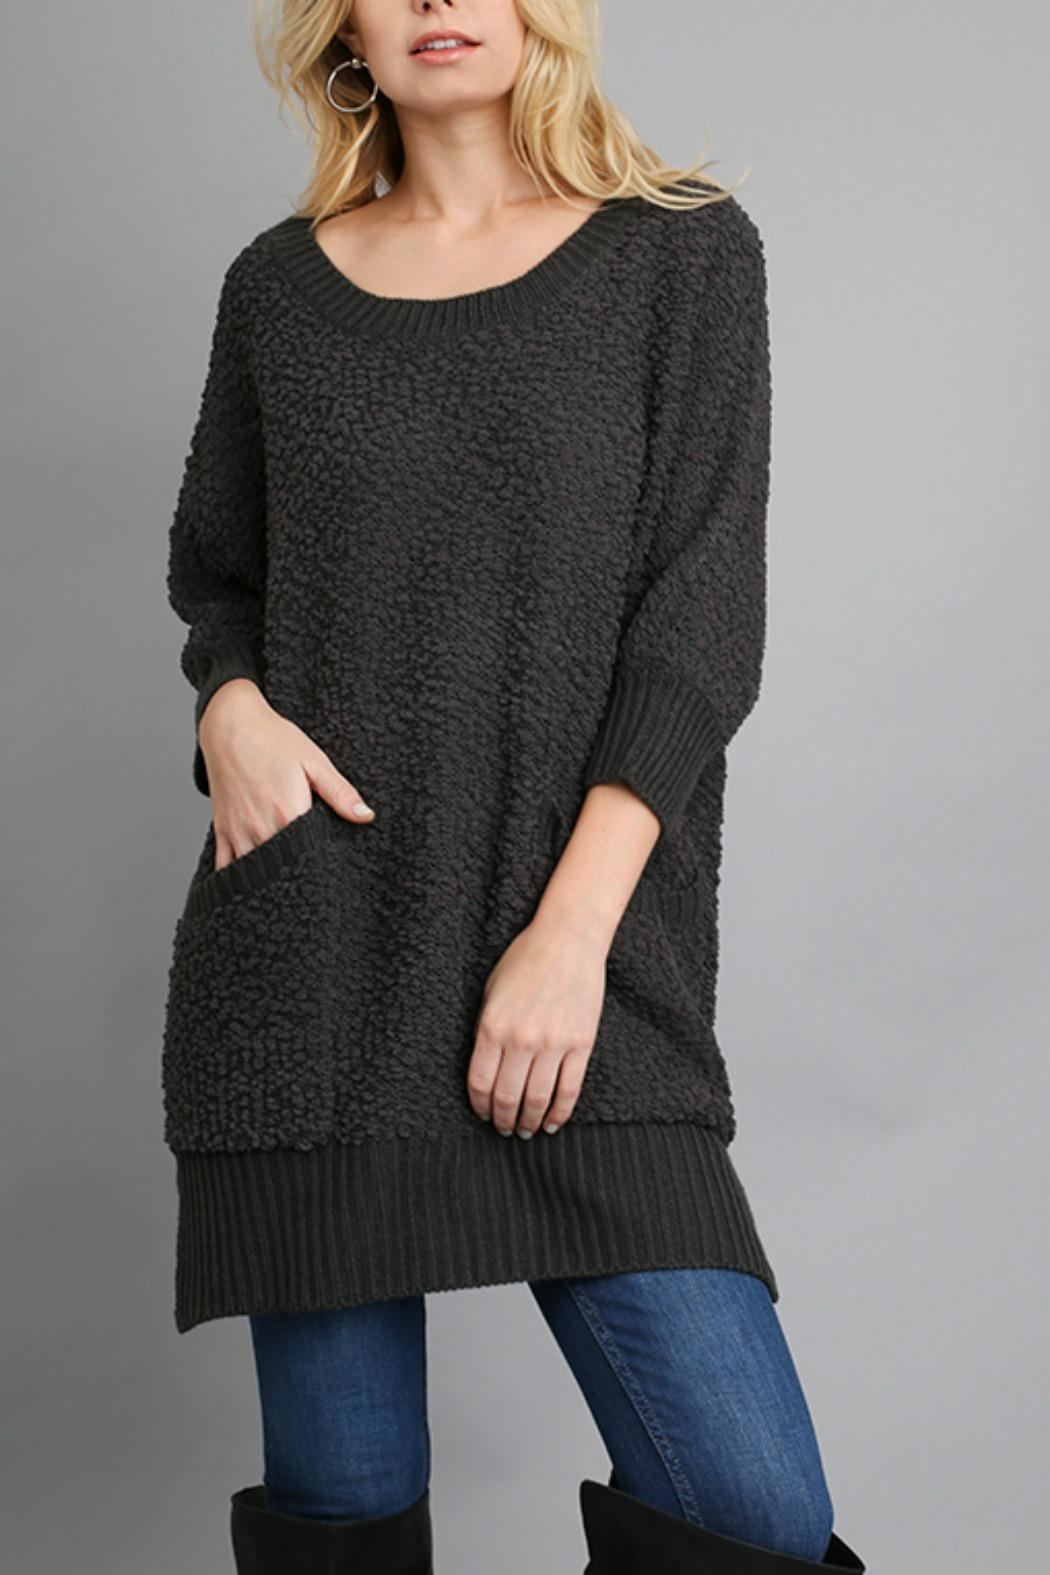 Umgee USA Cozy Tunic Sweater from Texas by BareTrees Boutique ...